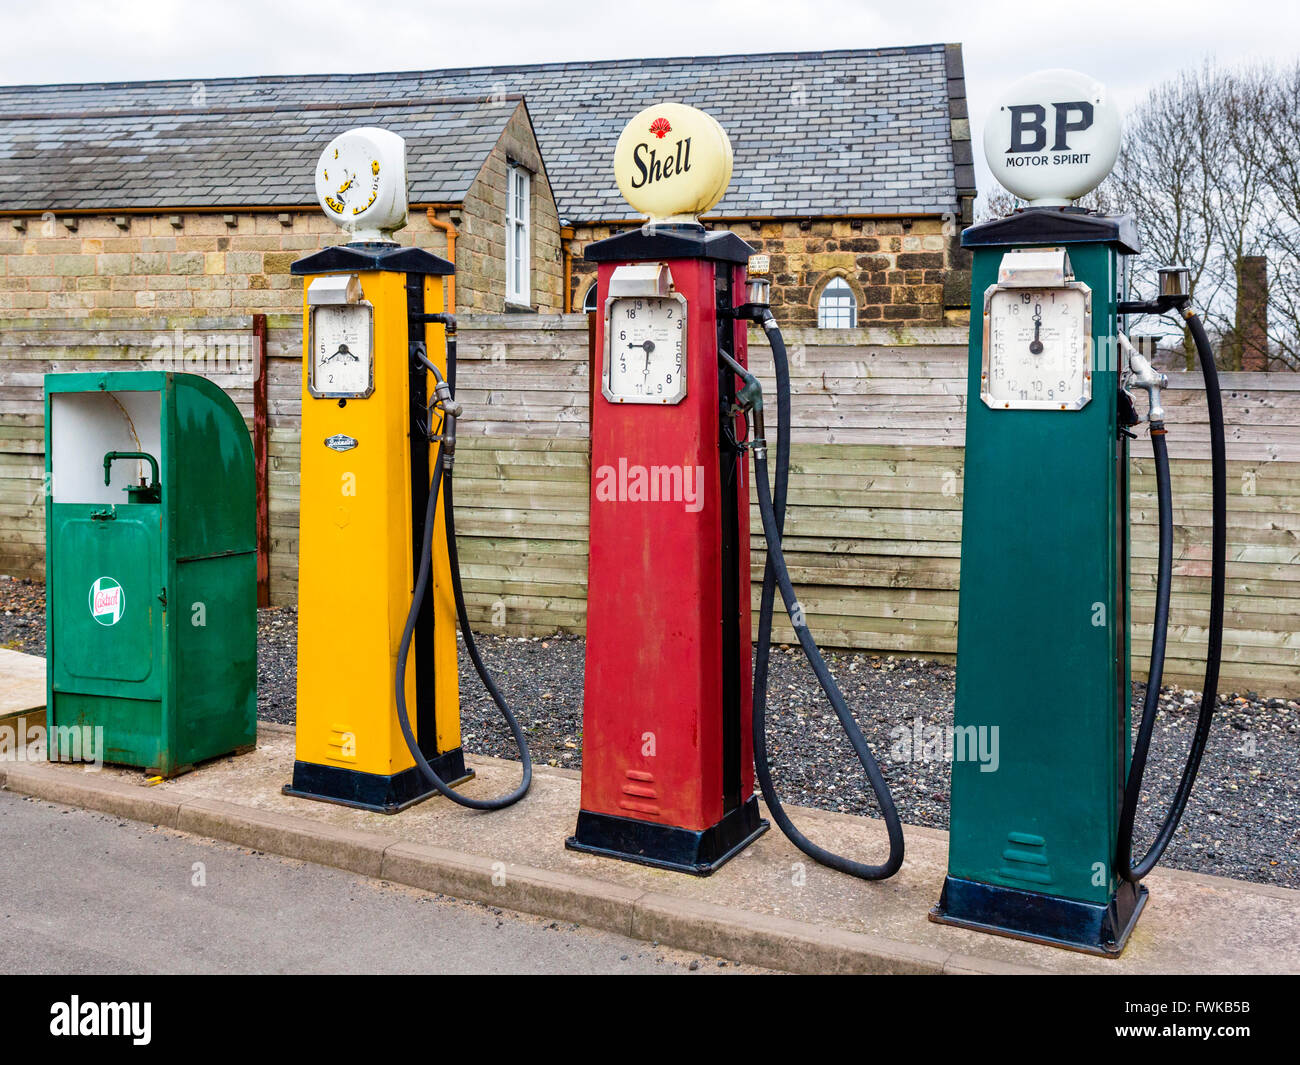 Old fashioned petrol pumps at a garage in the Black Country Living Museum, Dudley, West Midlands, UK - Stock Image